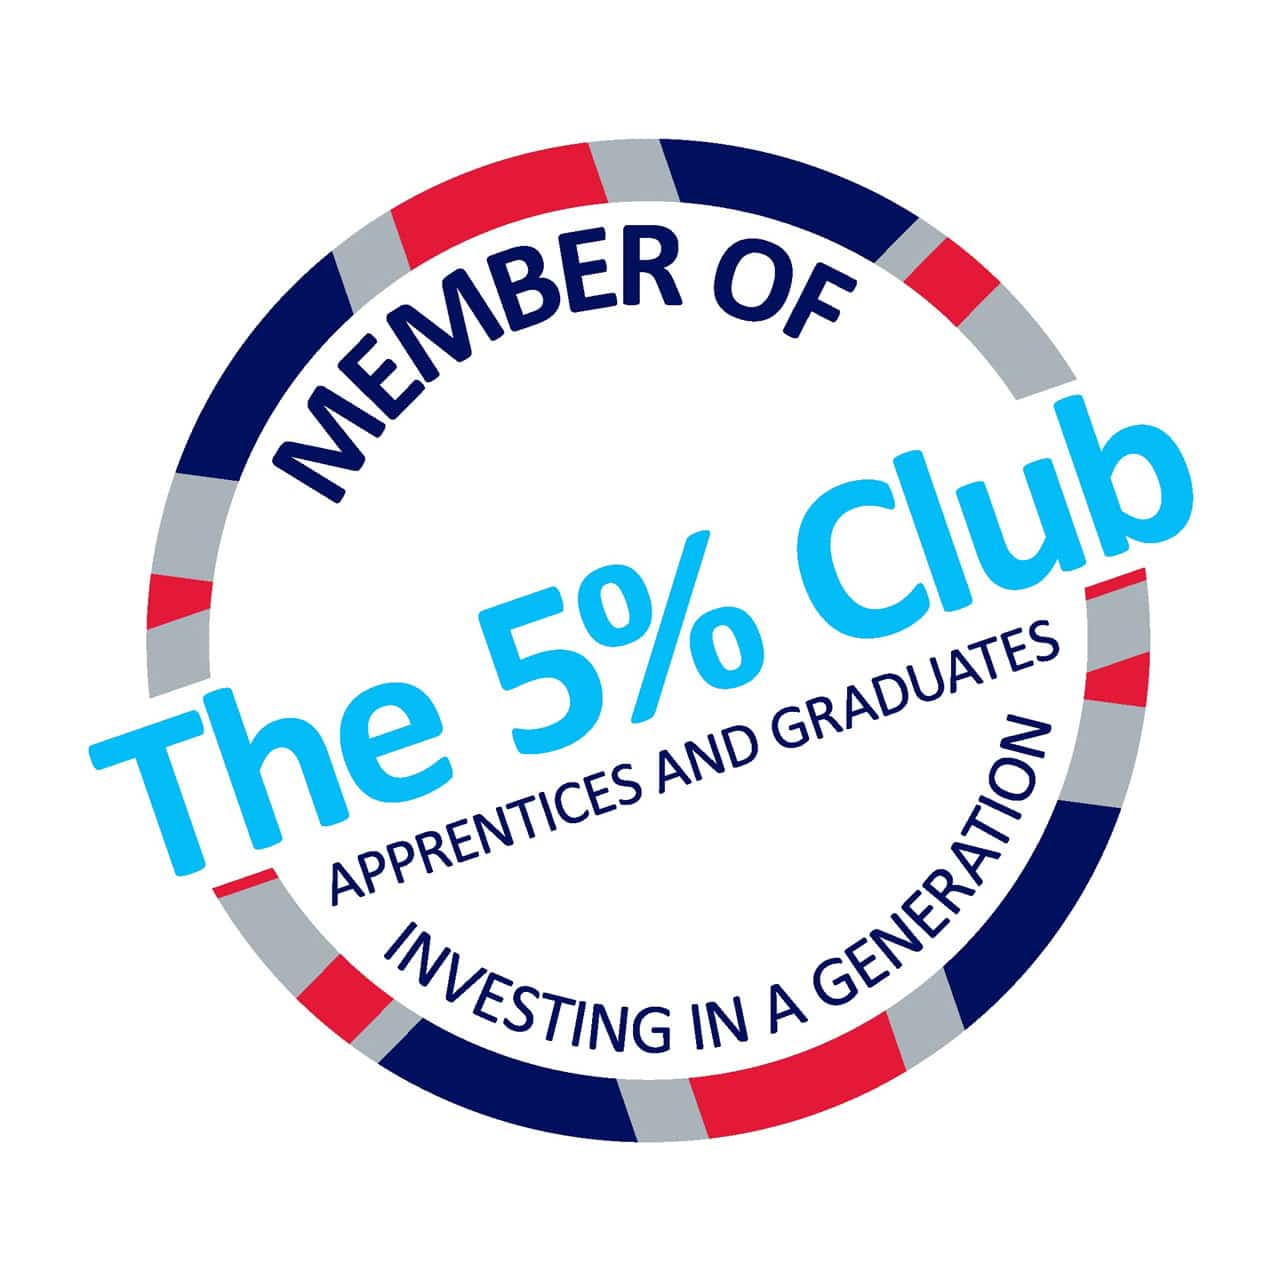 Multitech Site Services Members of the 5% Club - Committed to transforming the fortunes of young people in the UK